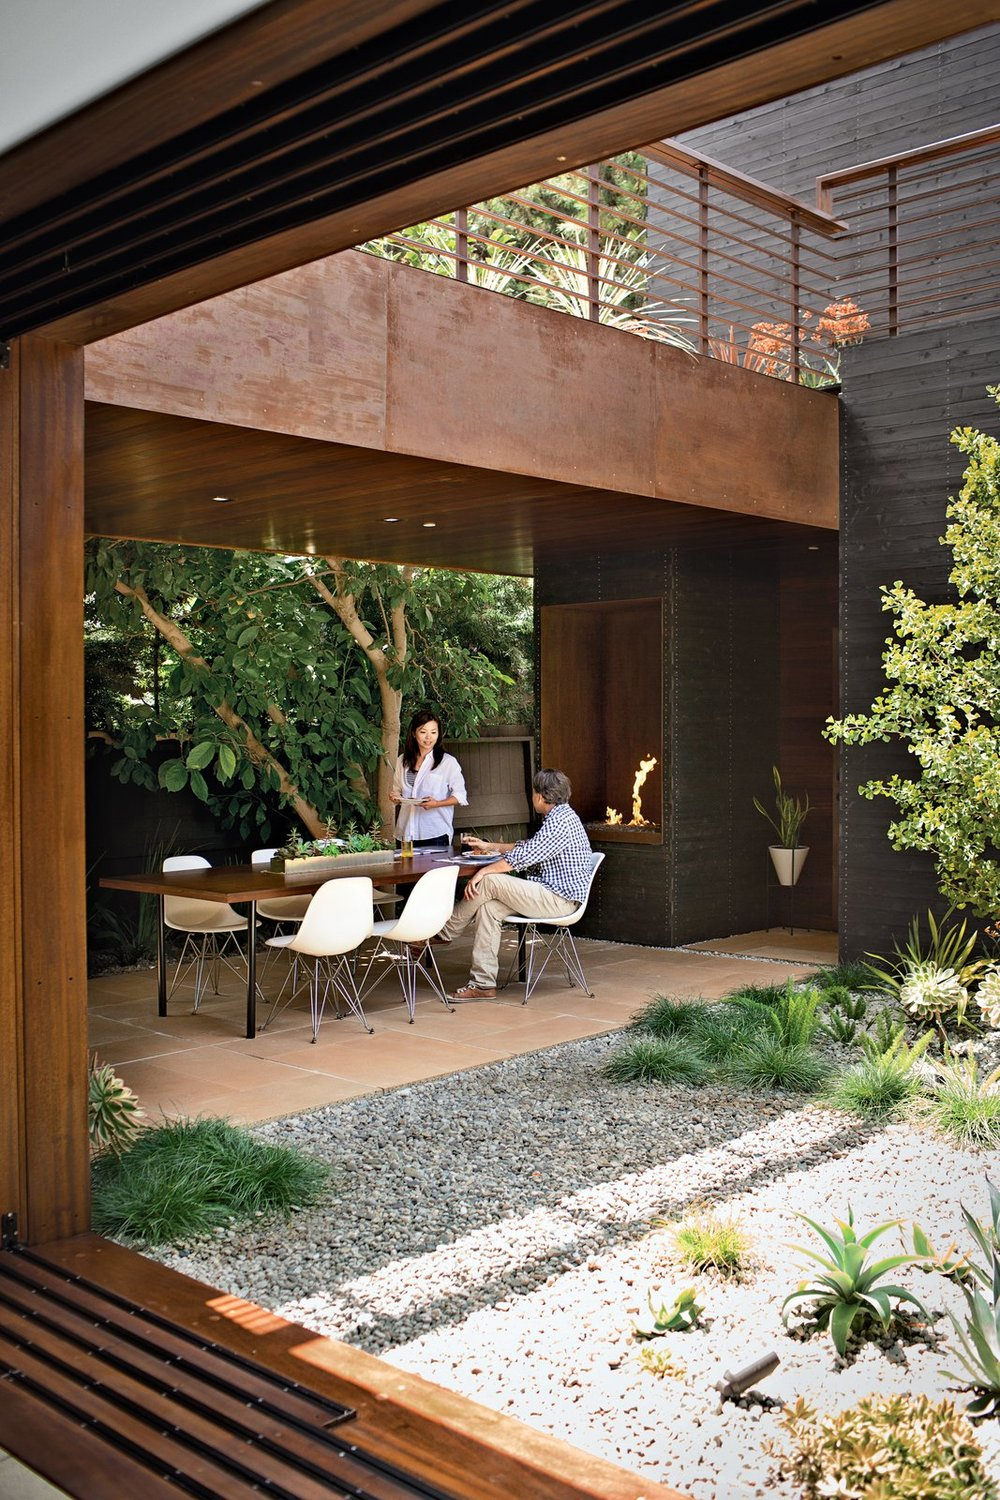 Spark Modern Fire  Image via  dwell . Photography by Coral von Zumwalt.